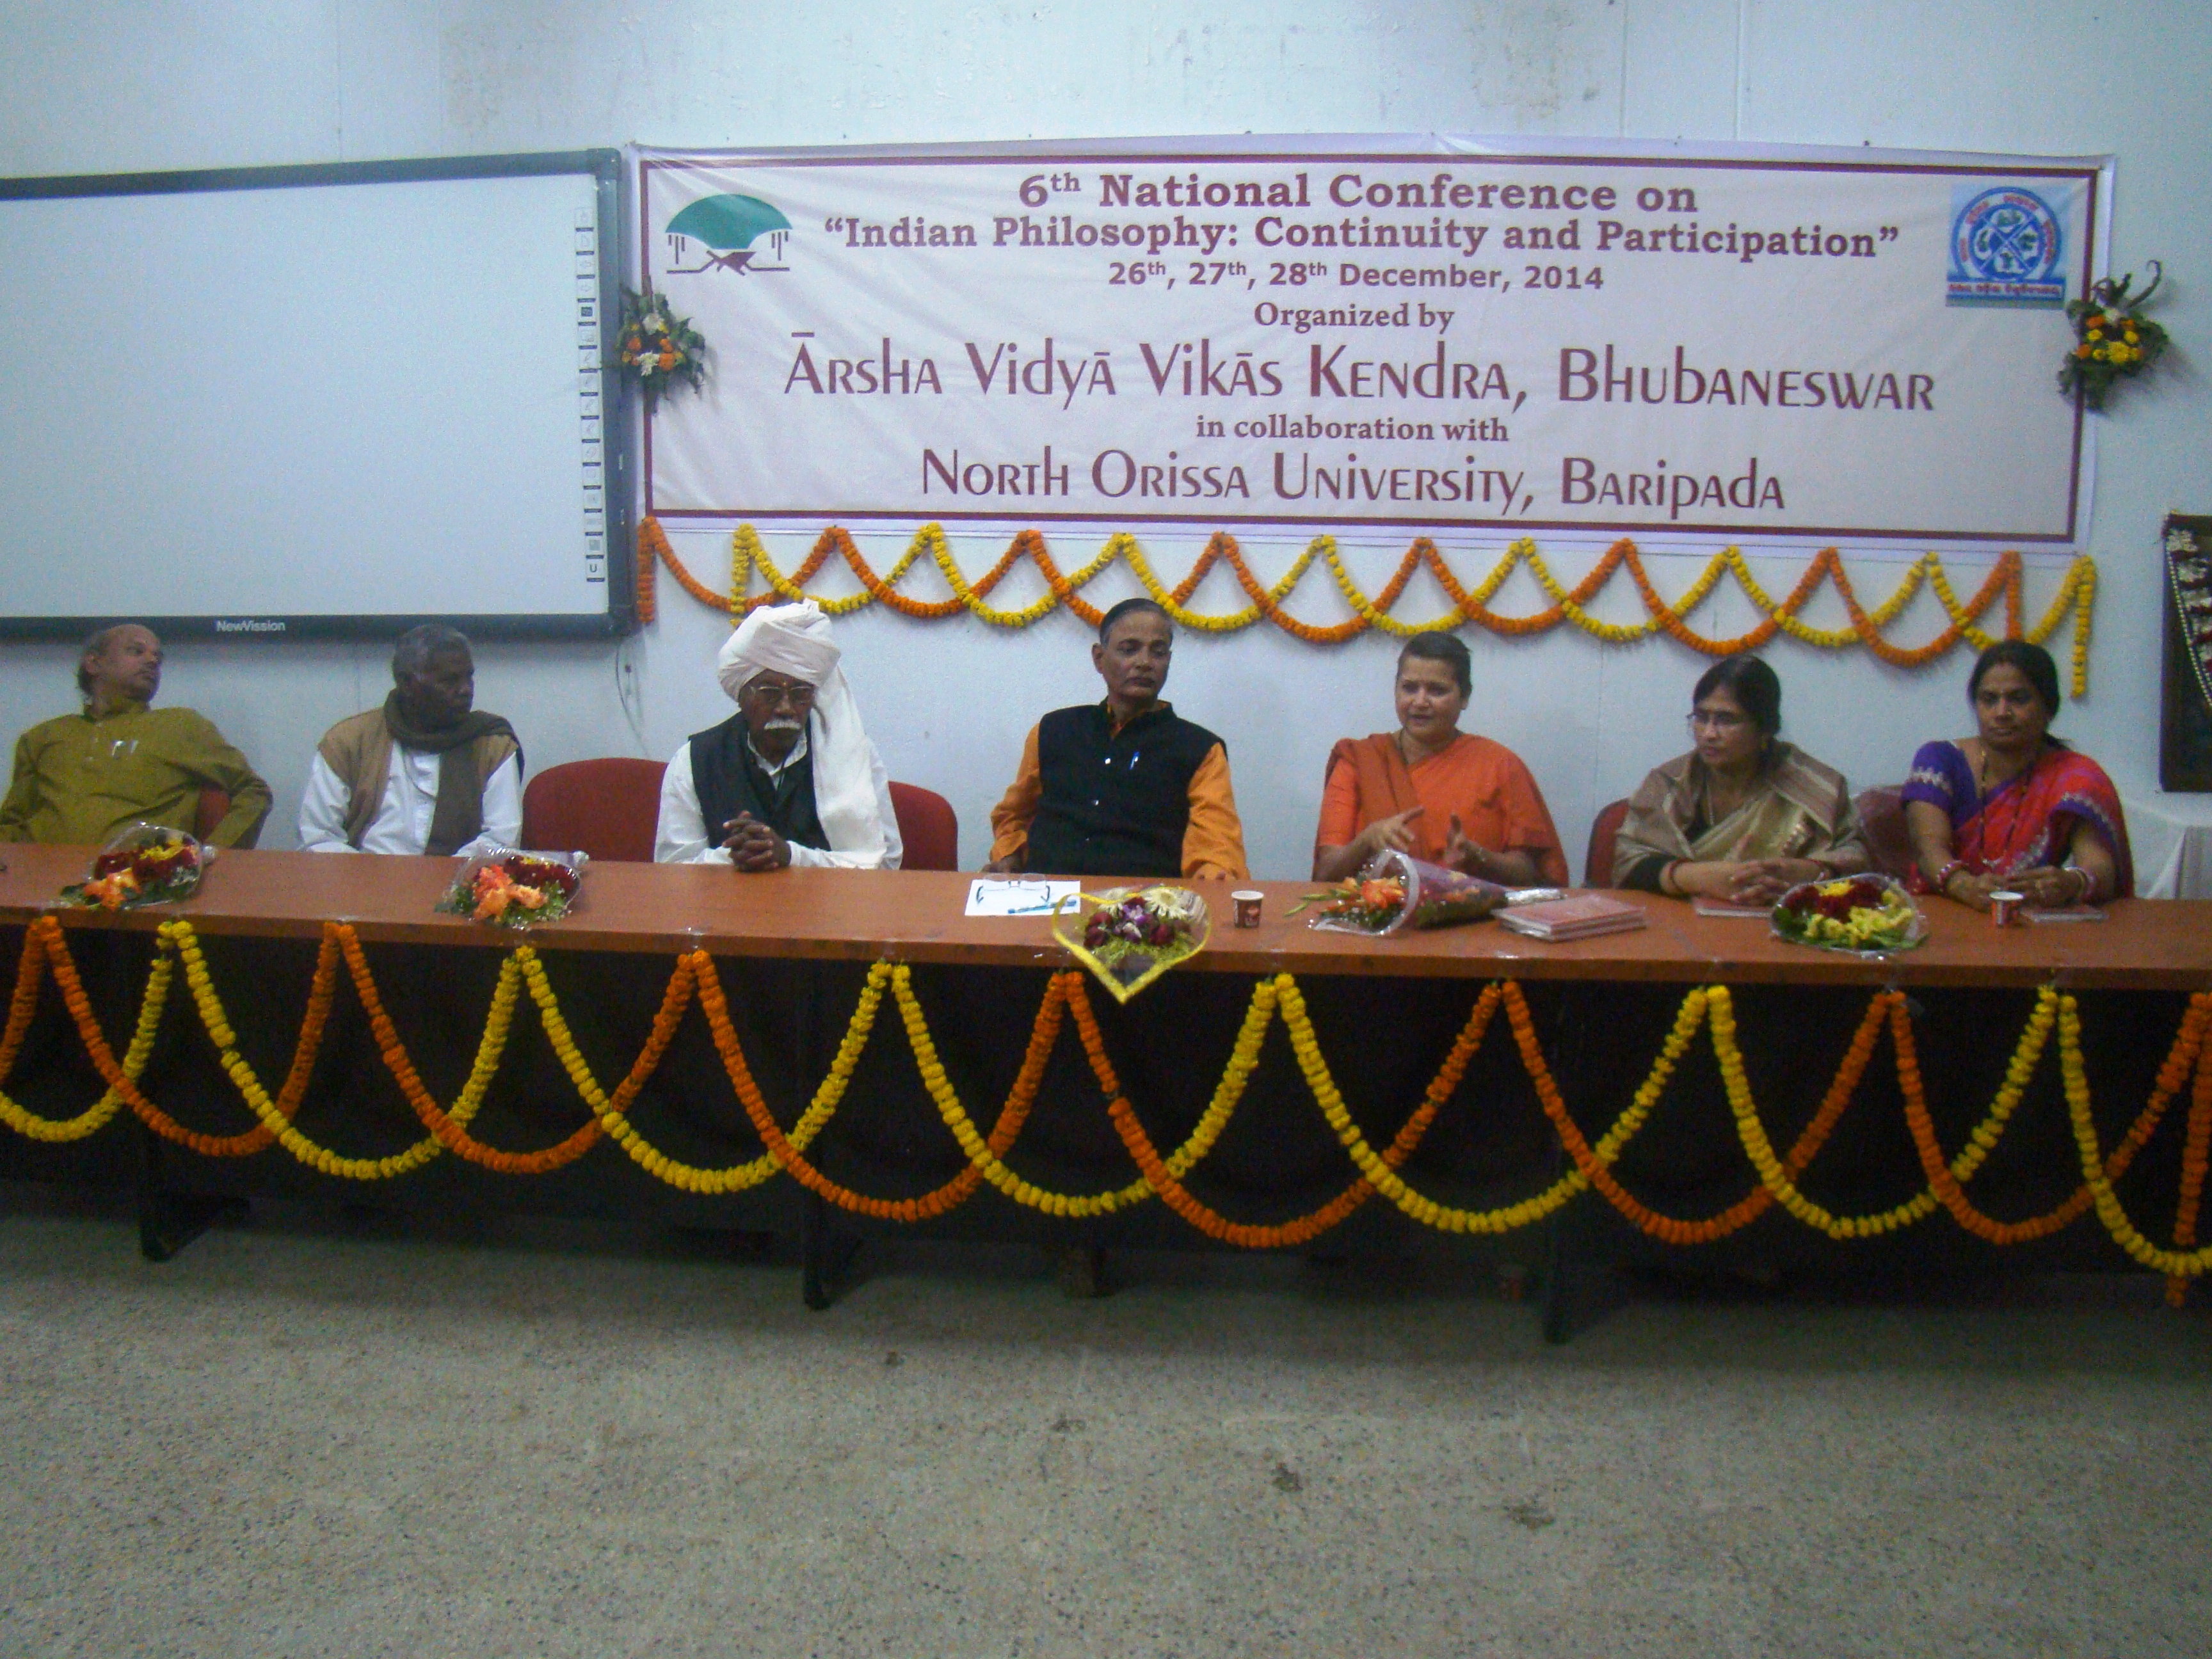 Swamini speaking in the Valedictory Session